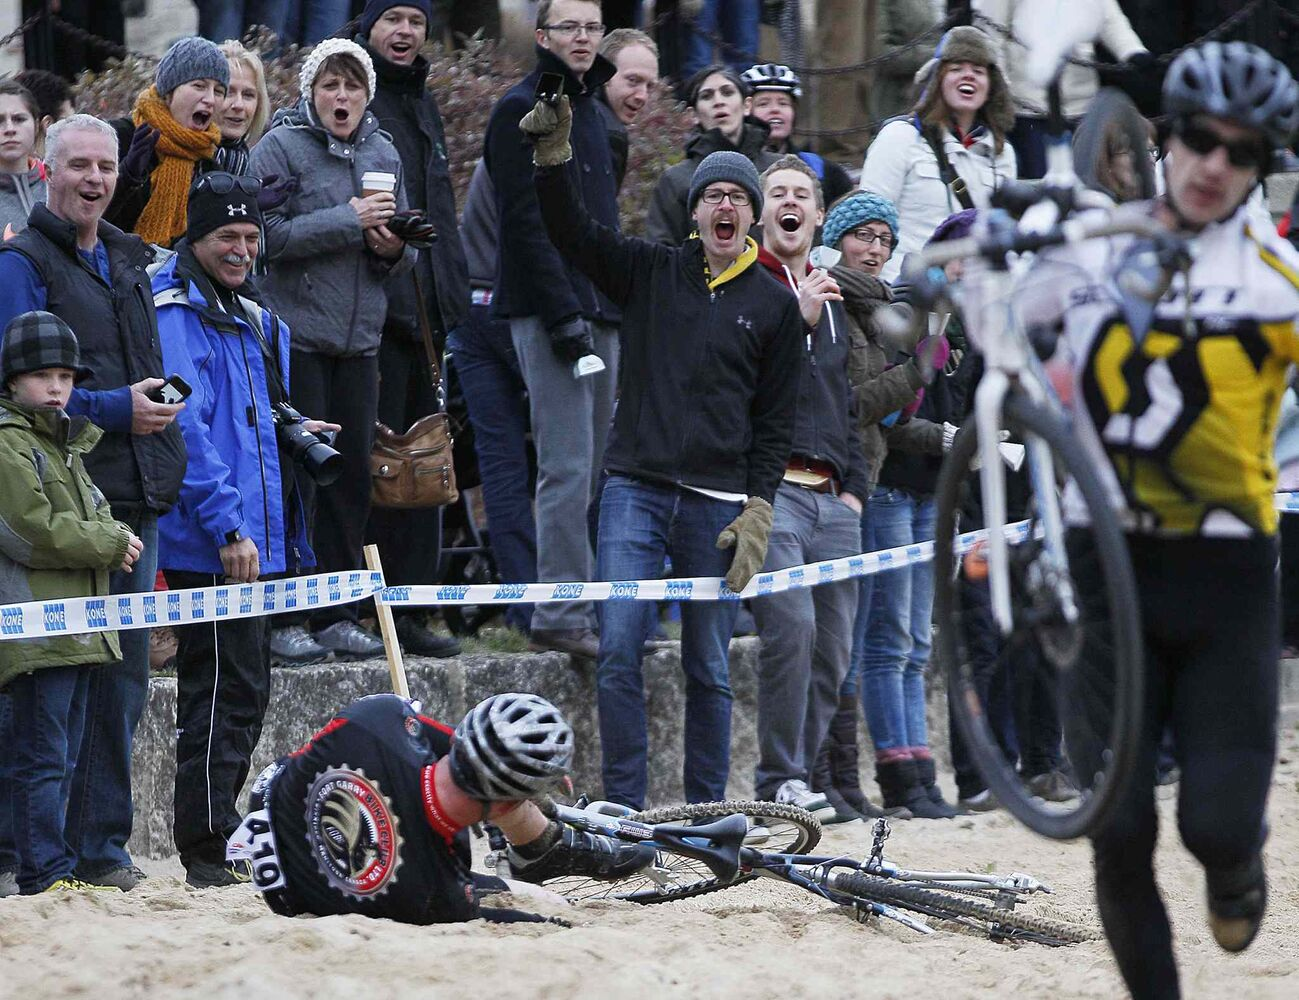 Fans react as Luke Enns (419) takes a spill in the sandpit. (John Woods / Winnipeg Free Press)